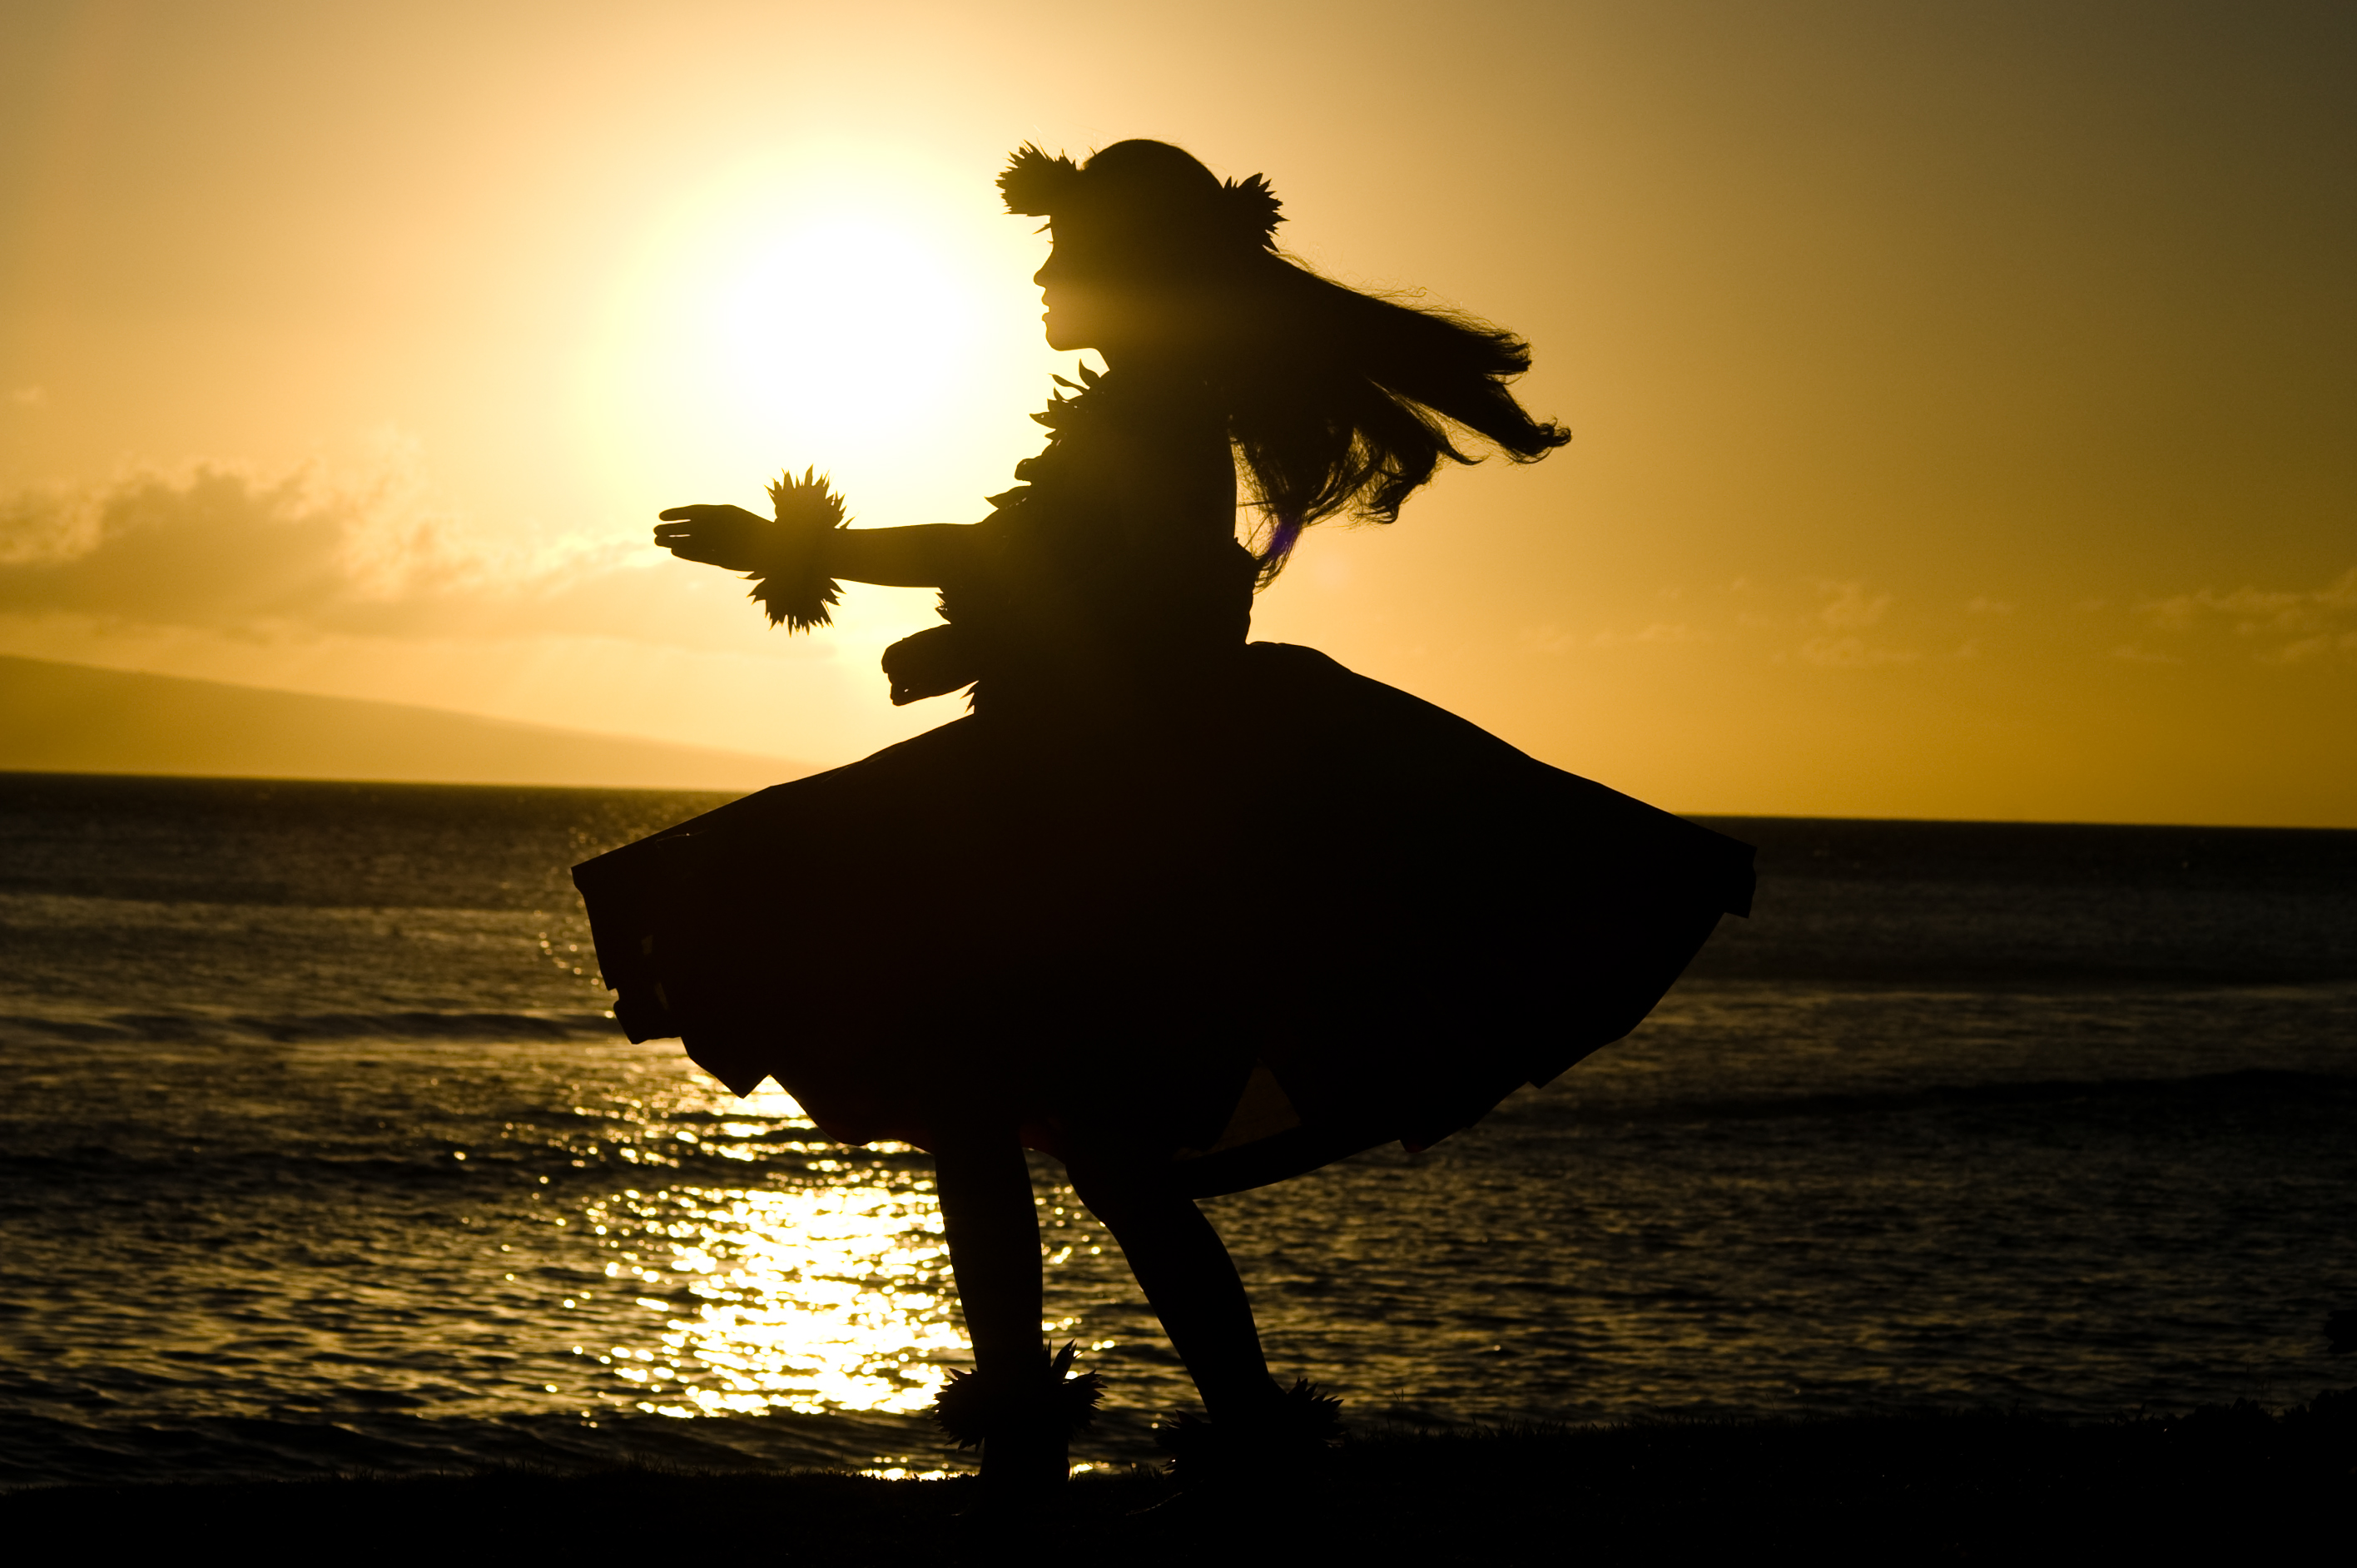 Maui Photo Festival And Workshops Combines Top Digital